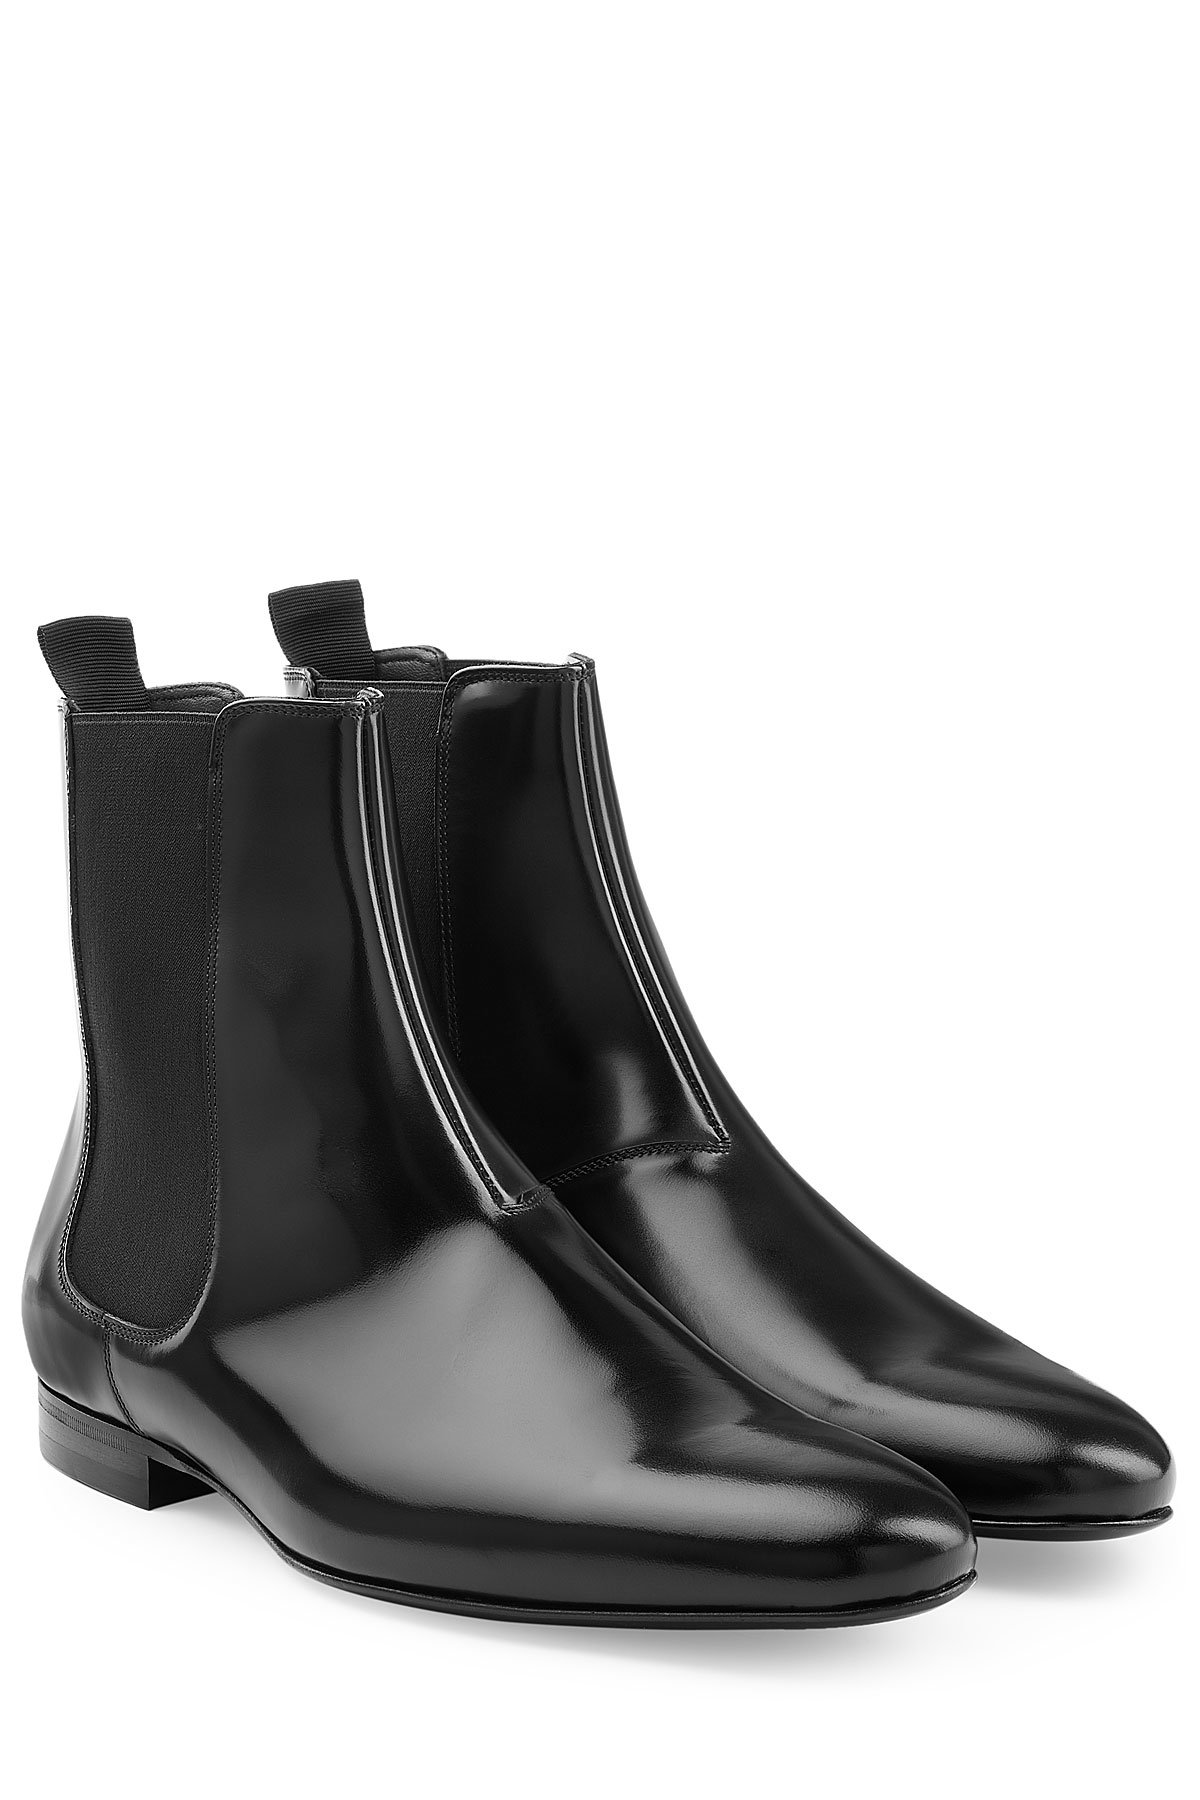 Burberry Patent Leather Chelsea Boots In Black For Men Lyst